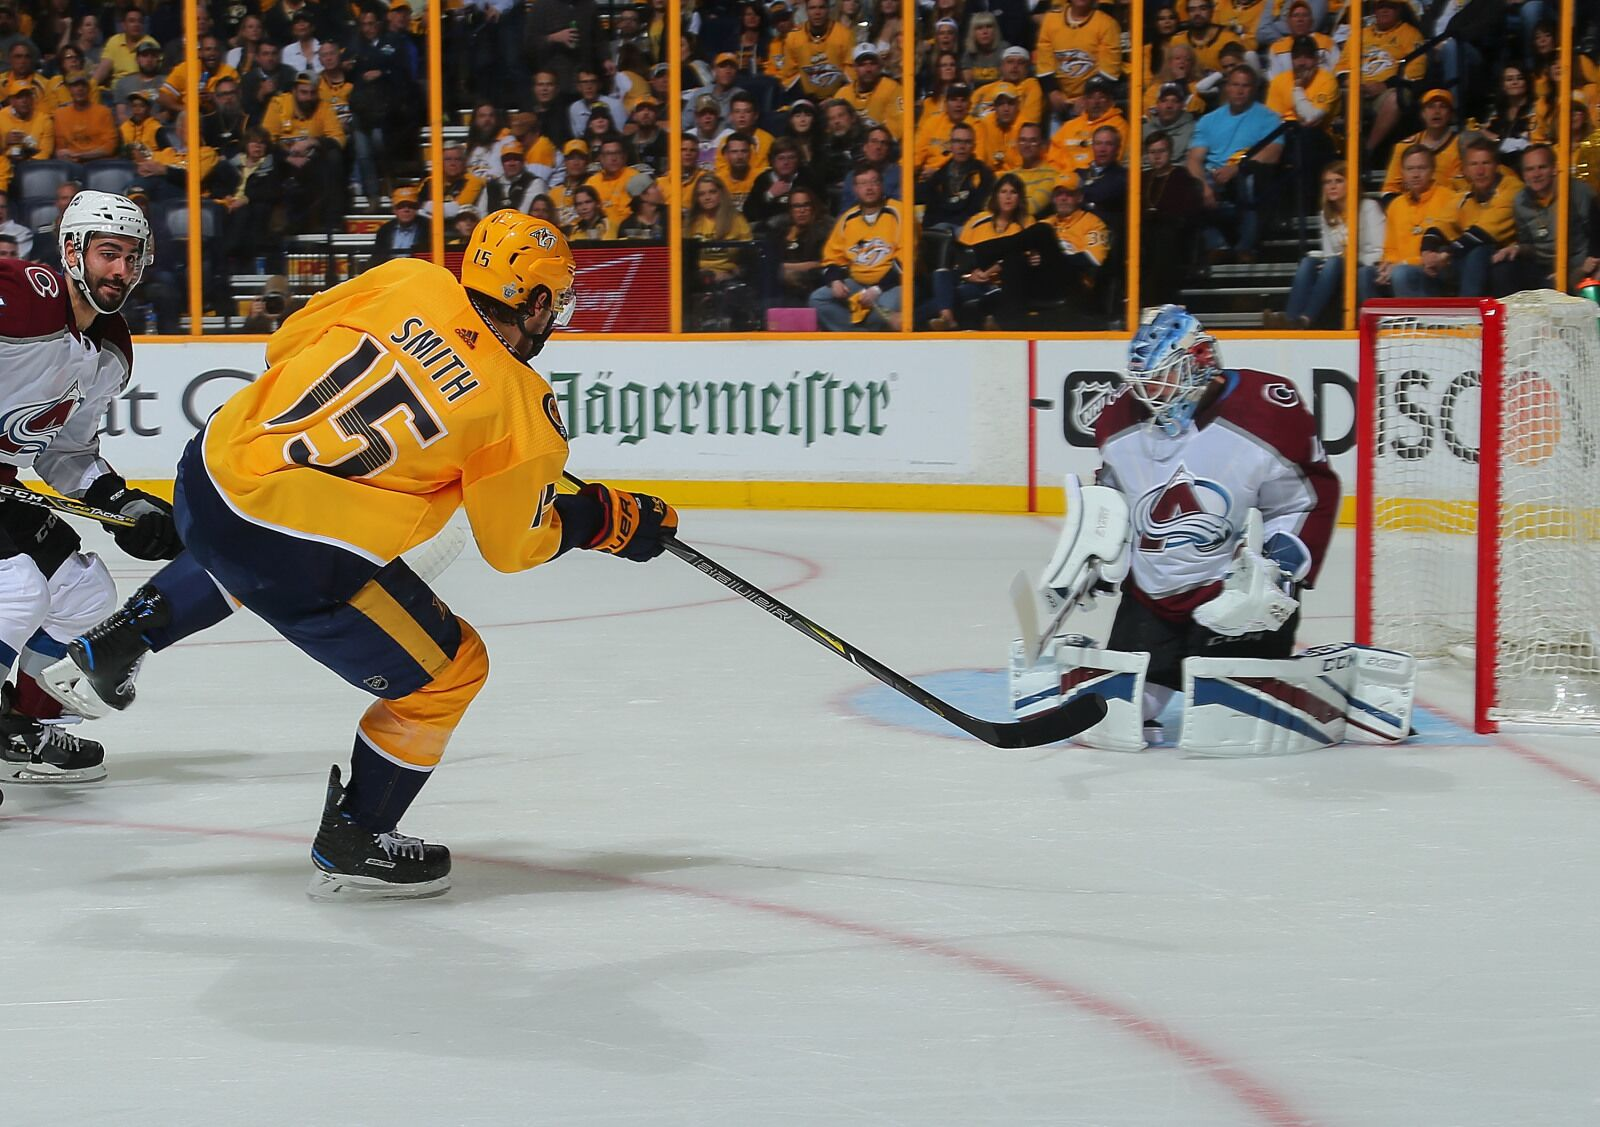 945530550-colorado-avalanche-v-nashville-predators-game-one.jpg